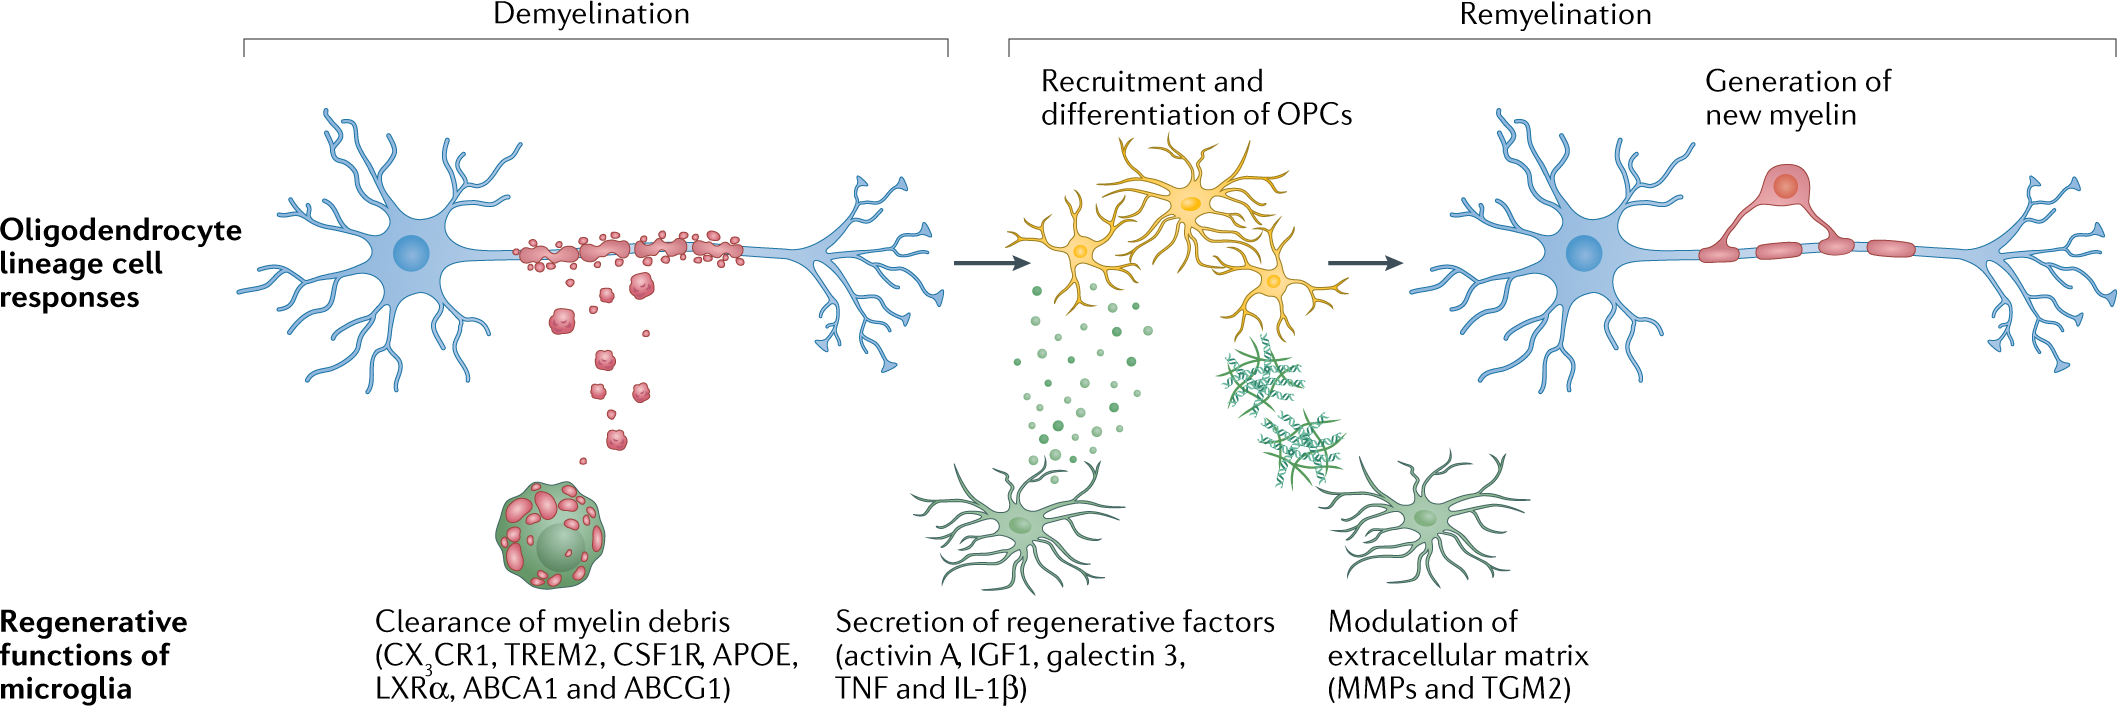 The pro-remyelination properties of microglia in the central nervous s